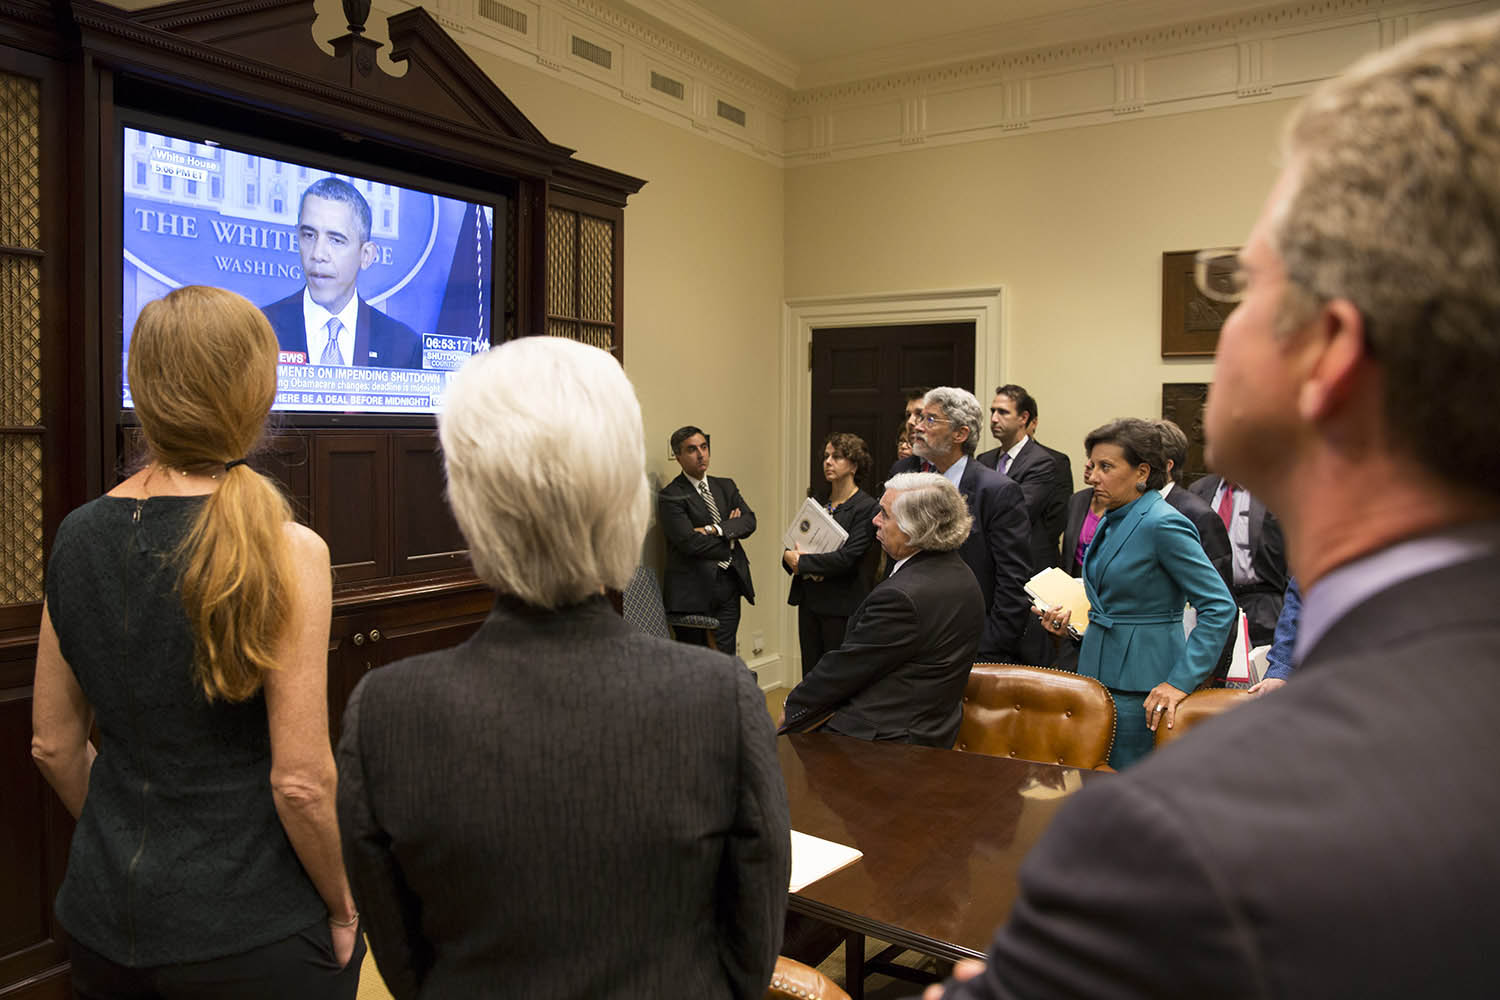 Members of the Cabinet watch as President Obama makes a televised statement on a possible government shutdown